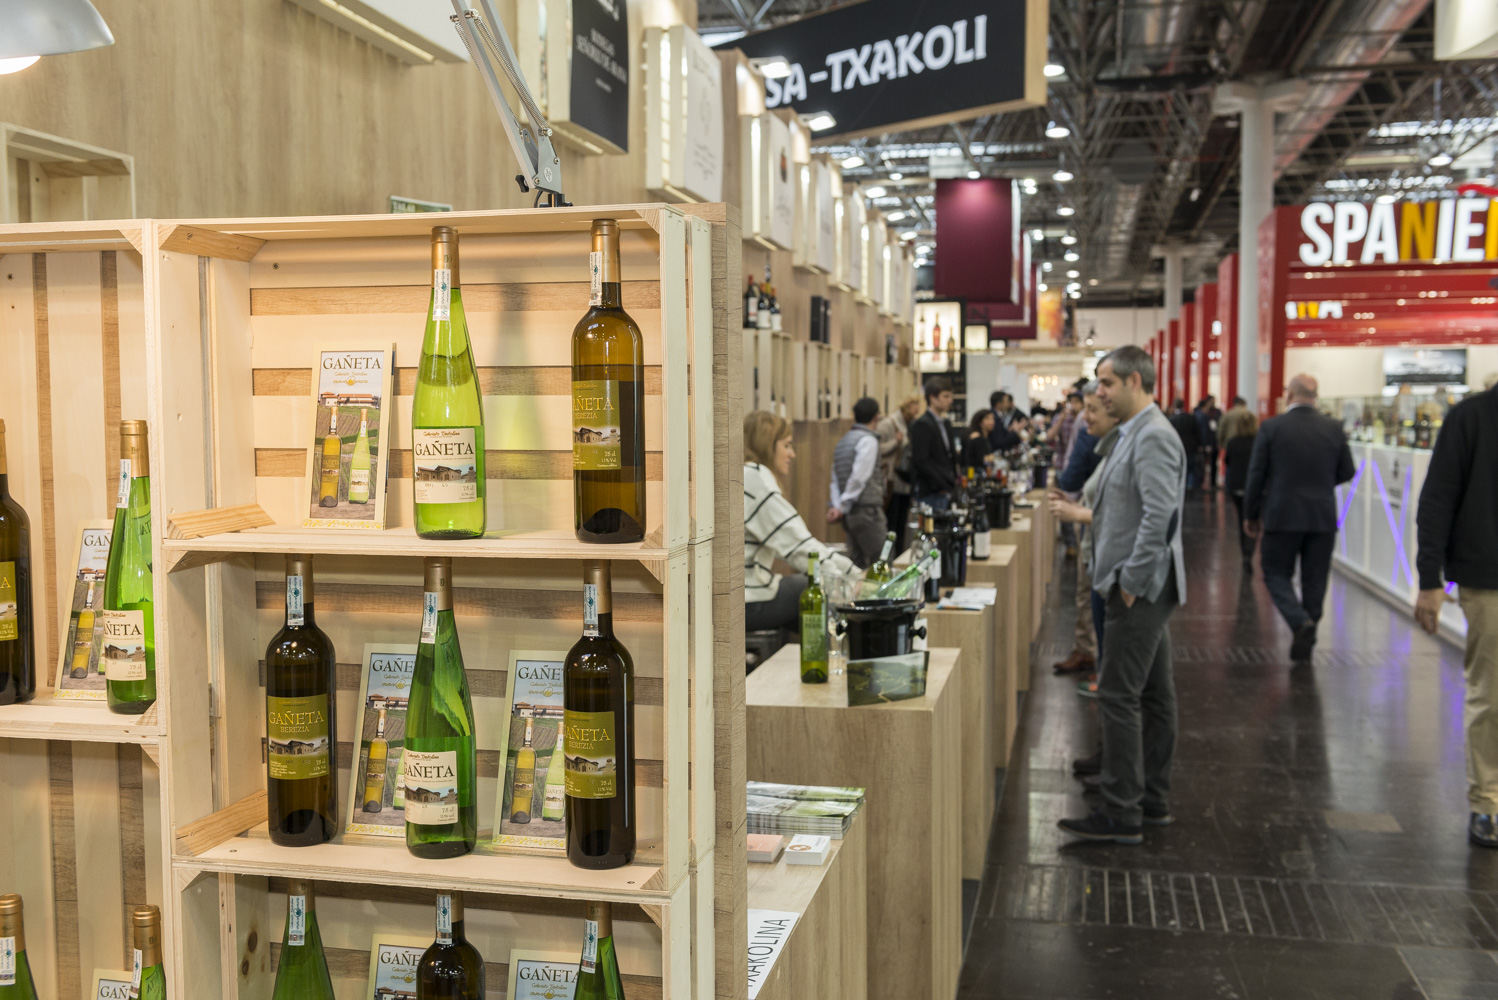 prowein_stand_euskadi_basque_country_05.jpg